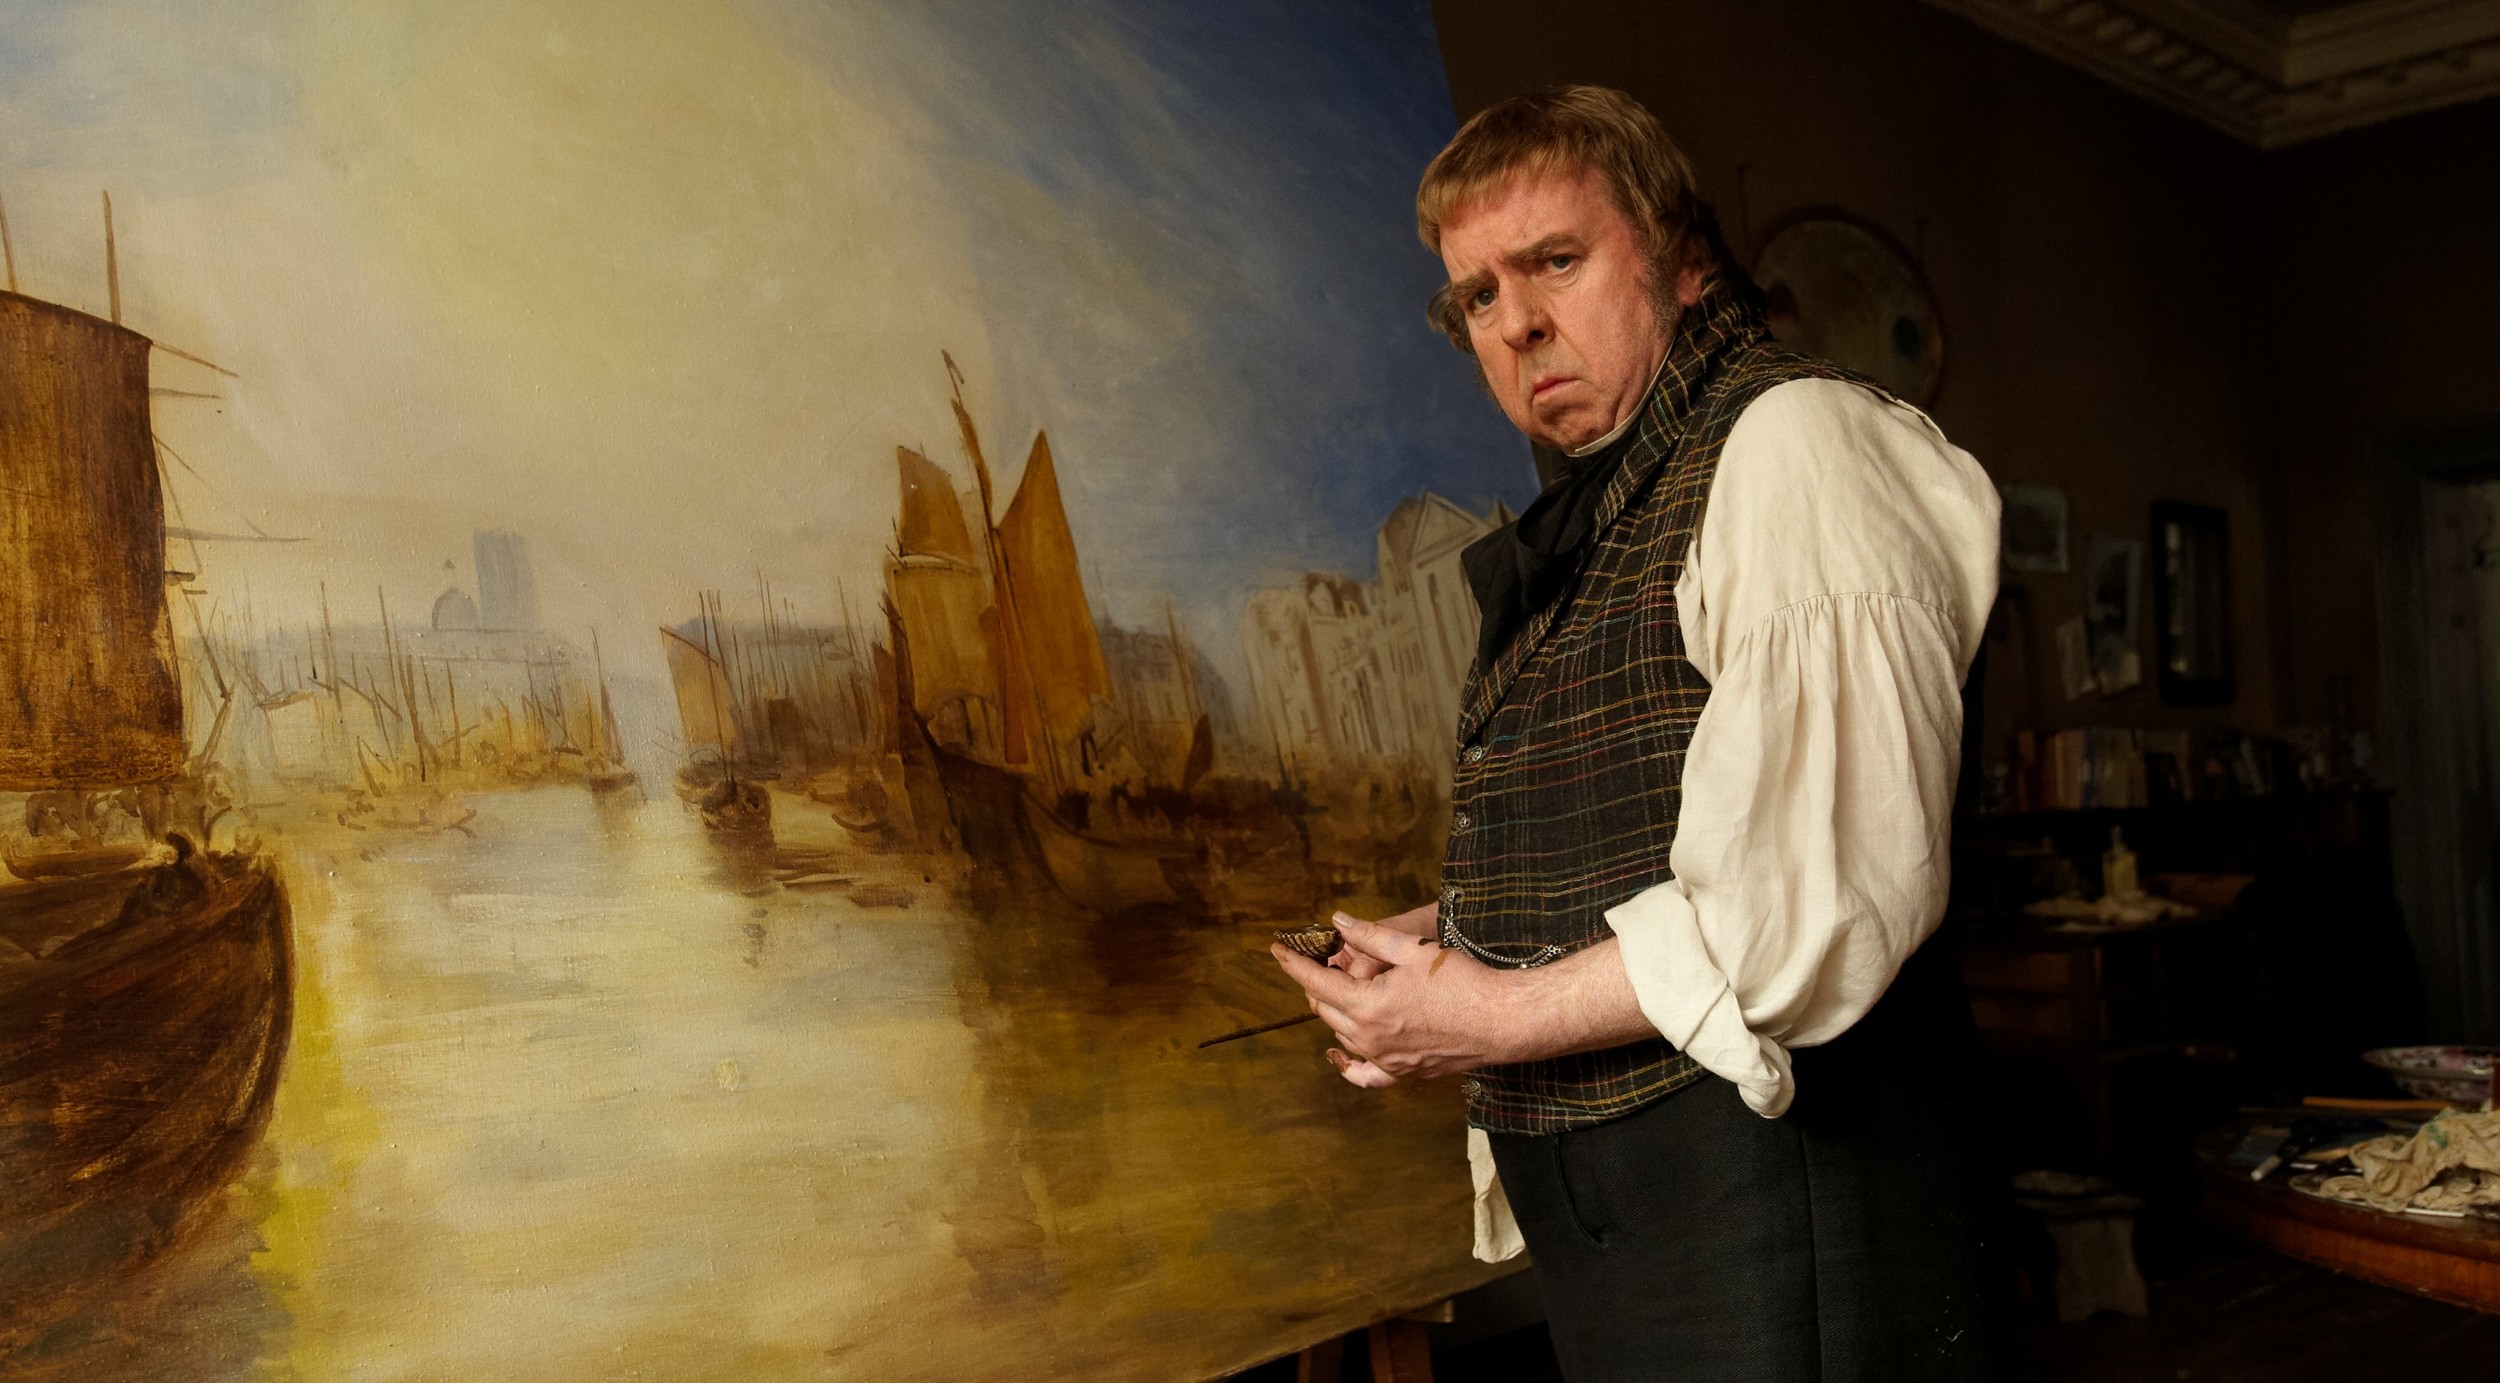 89u3166-timothy-spall-as-jmw-turner-turner-paints-in-his-studio__140516013417-1